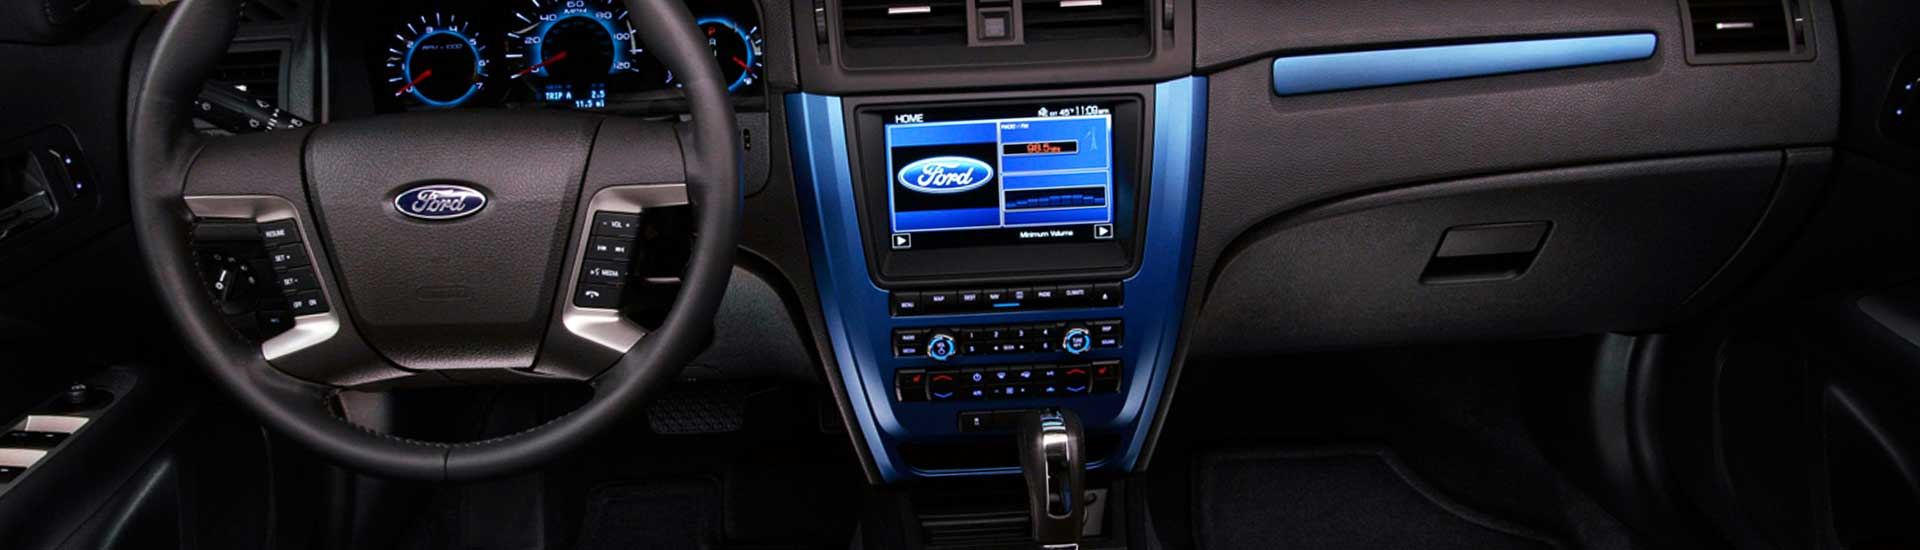 Blue carbon fiber dash kit inside Ford